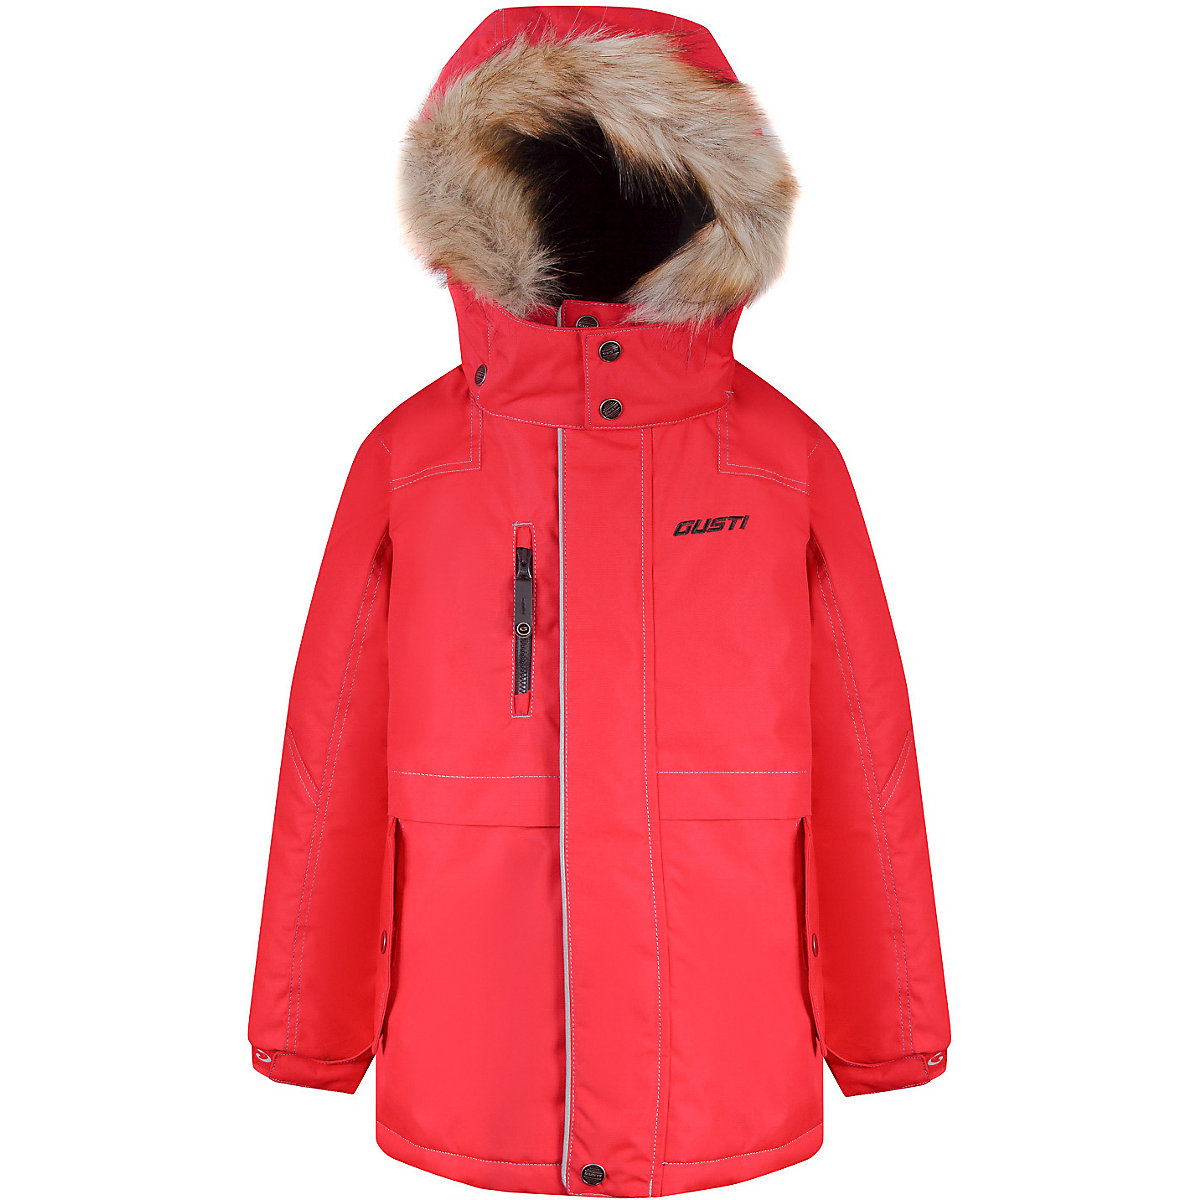 GUSTI Down & Parkas 9511936 jacket for girls winter outerwear children jackets boys clothing icebear 2018 new men s winter jacket warm detachable hat male short coat fashion casual apparel man brand clothing mwd18813d